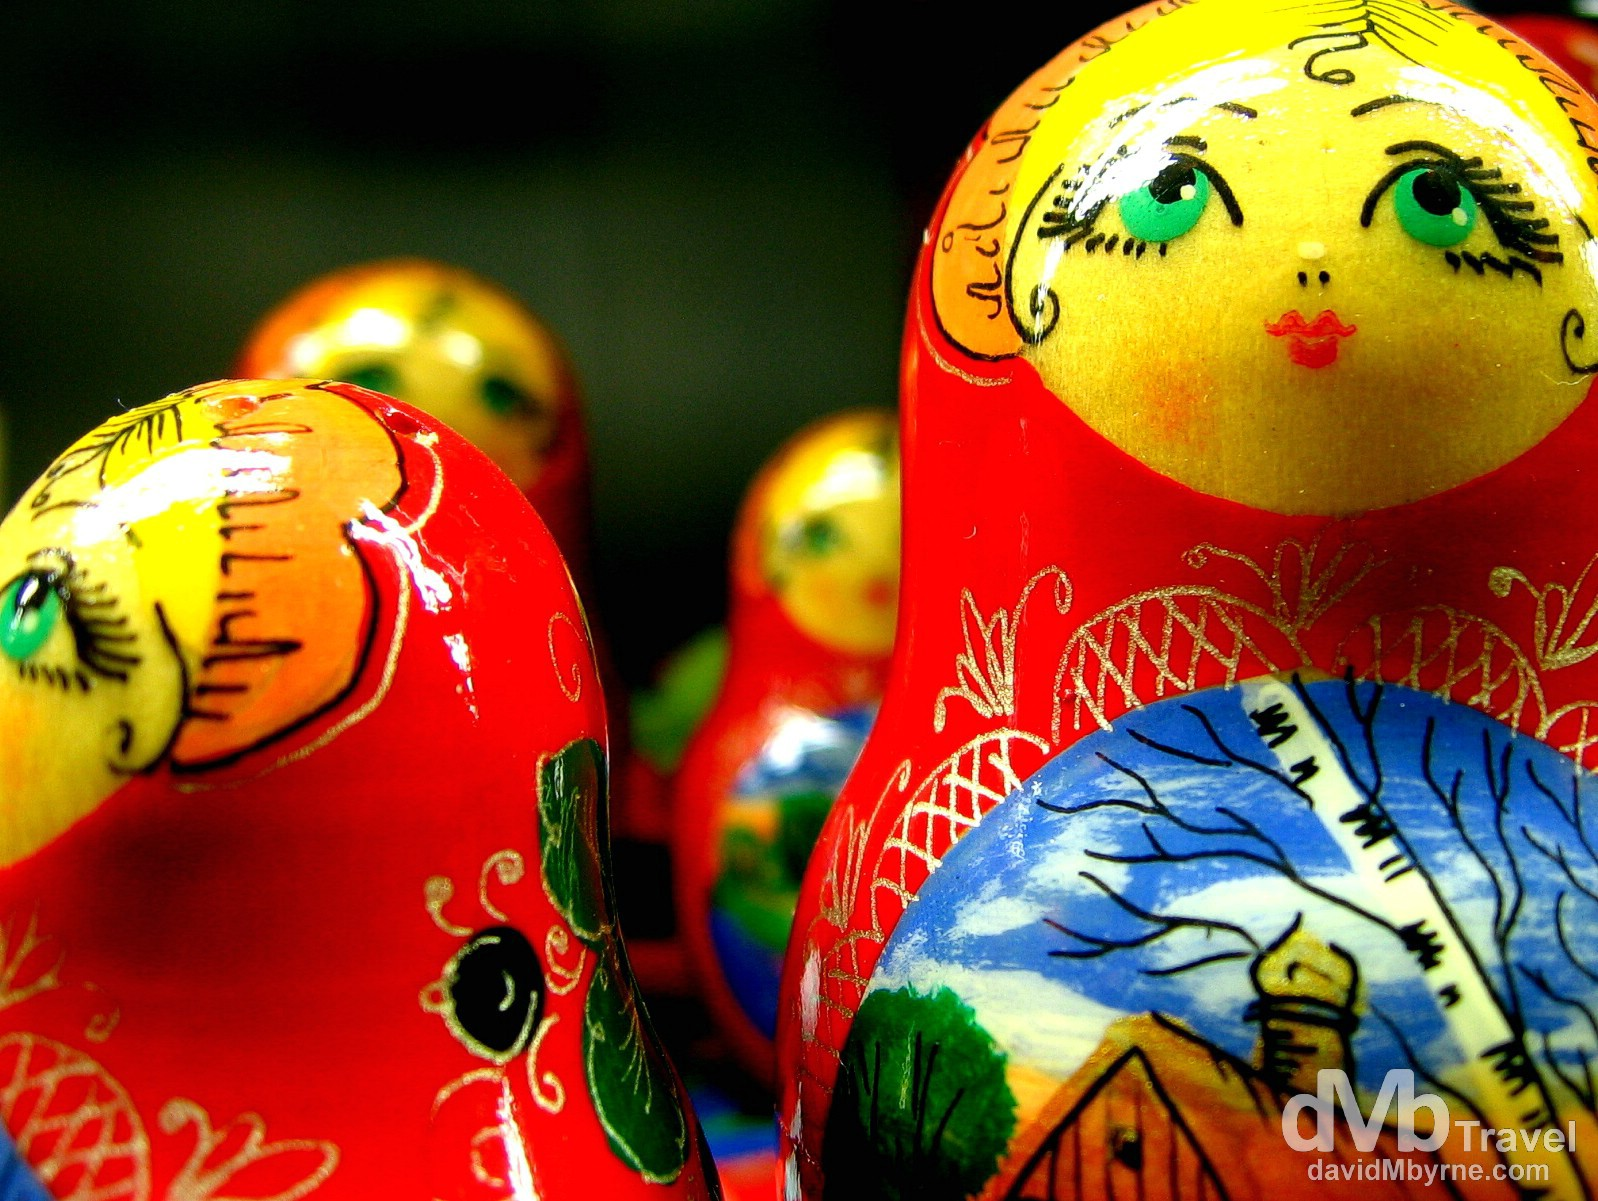 Matryoshka dolls in the gift shop of the Peter & Paul Fortress, St. Petersburg, Russia. February 28, 2006.